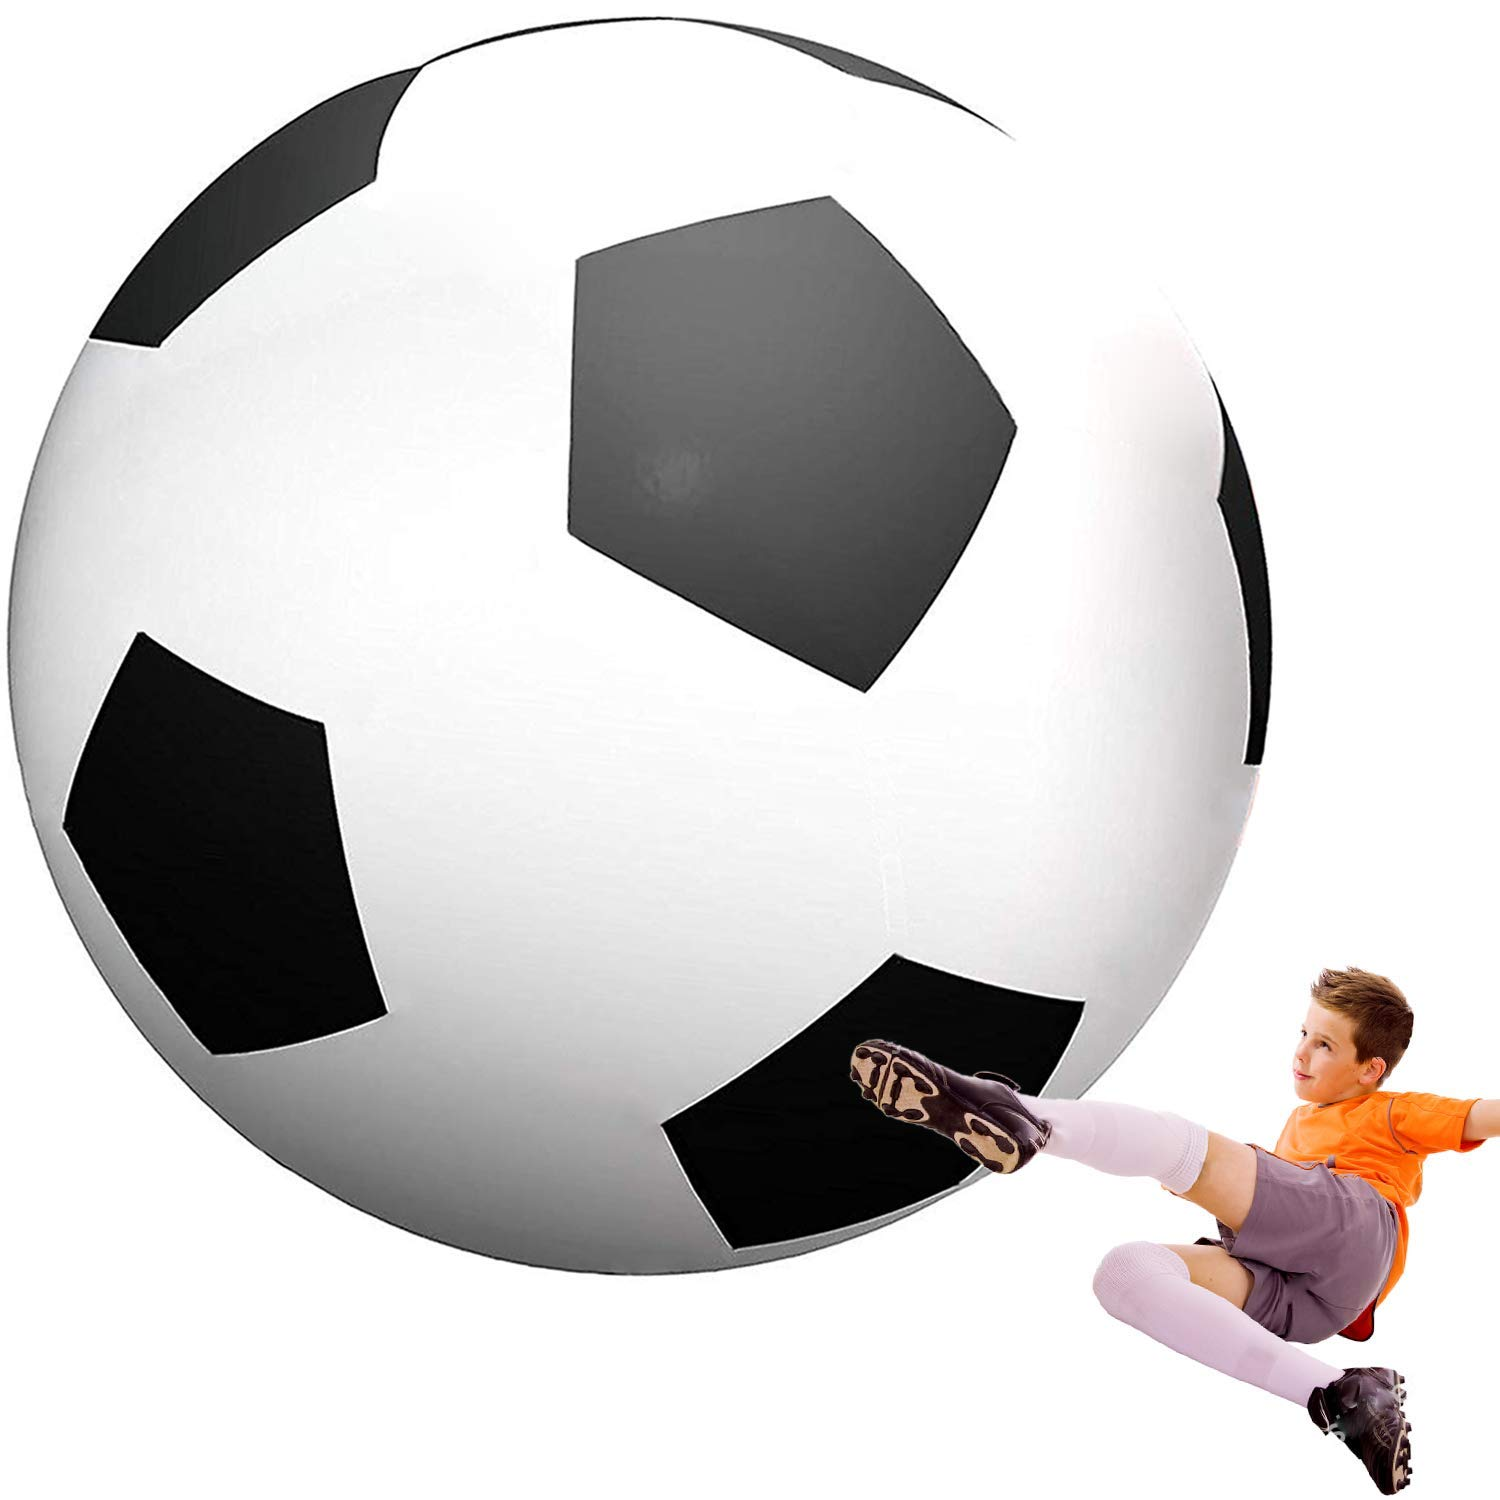 Macticy Giant Beach Ball 6 8 ft Diameter Extra Large Inflatable Beach Ball Pool Toy Jumbo Beach Ball (6' Soccer Ball) by Macticy